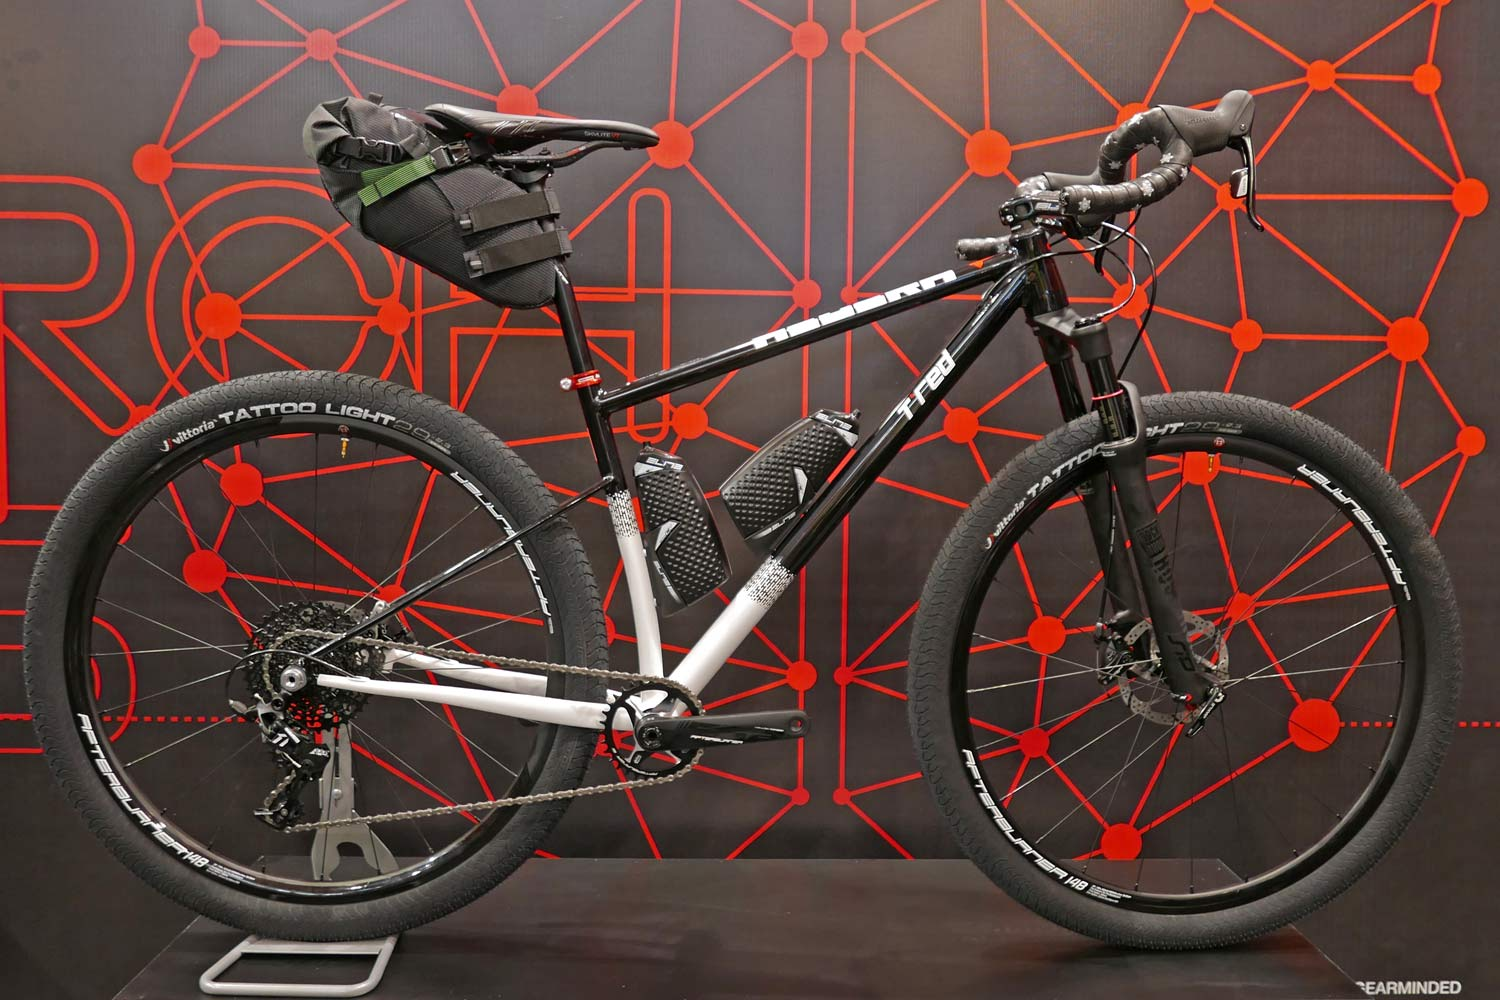 2c29ee70c5d EB17: 3 new bikes in 3 metals from TRed for road racing & adventure trail